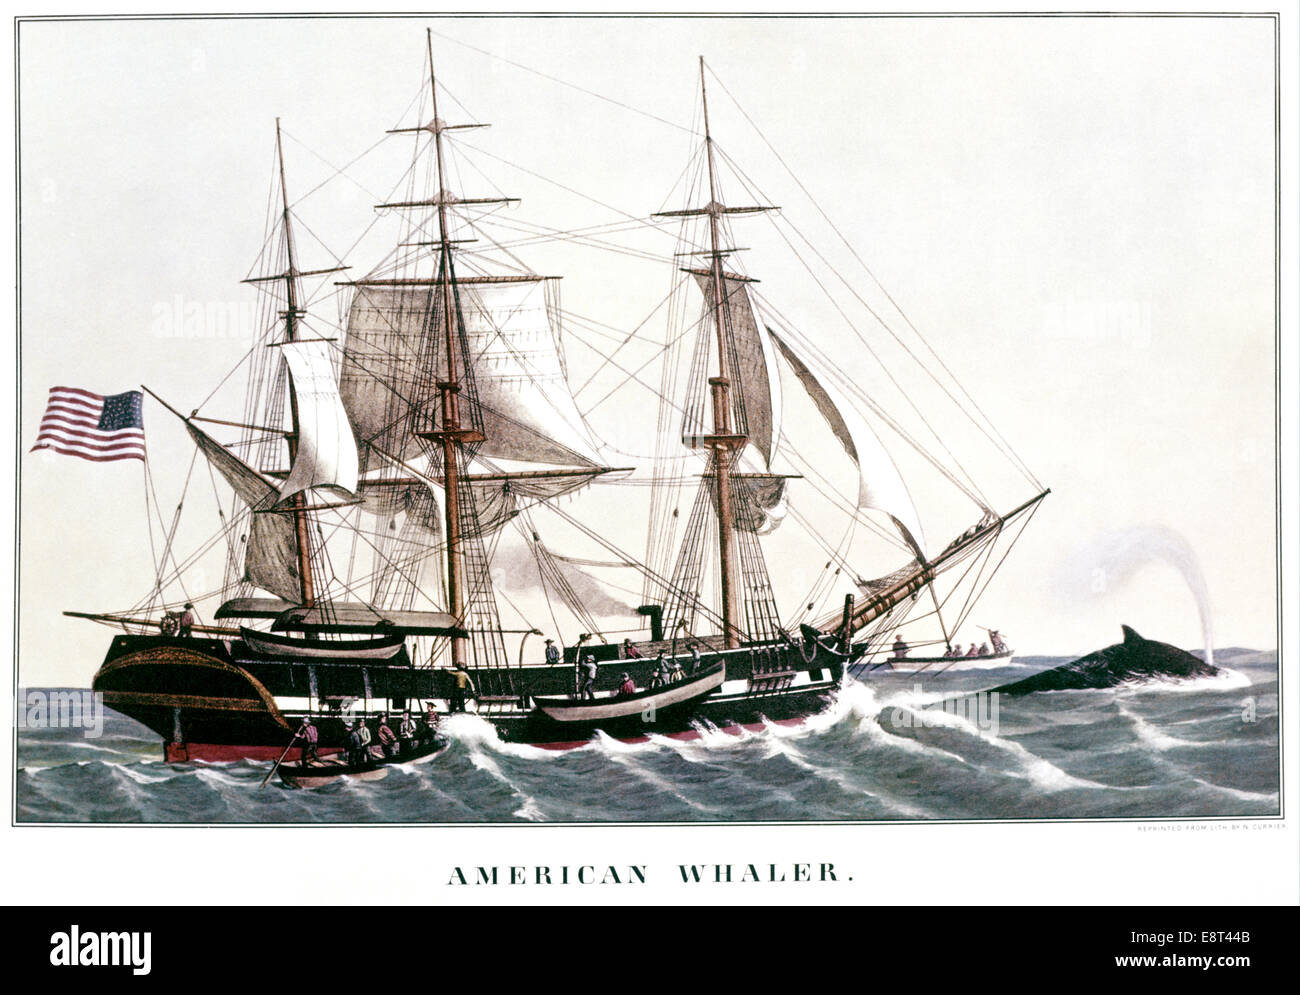 Whalers in action wood engraving published in 1855 stock illustration - Currier And Ives Lithograph Early American Whaling Ship Chasing Whale In Action Stock Image